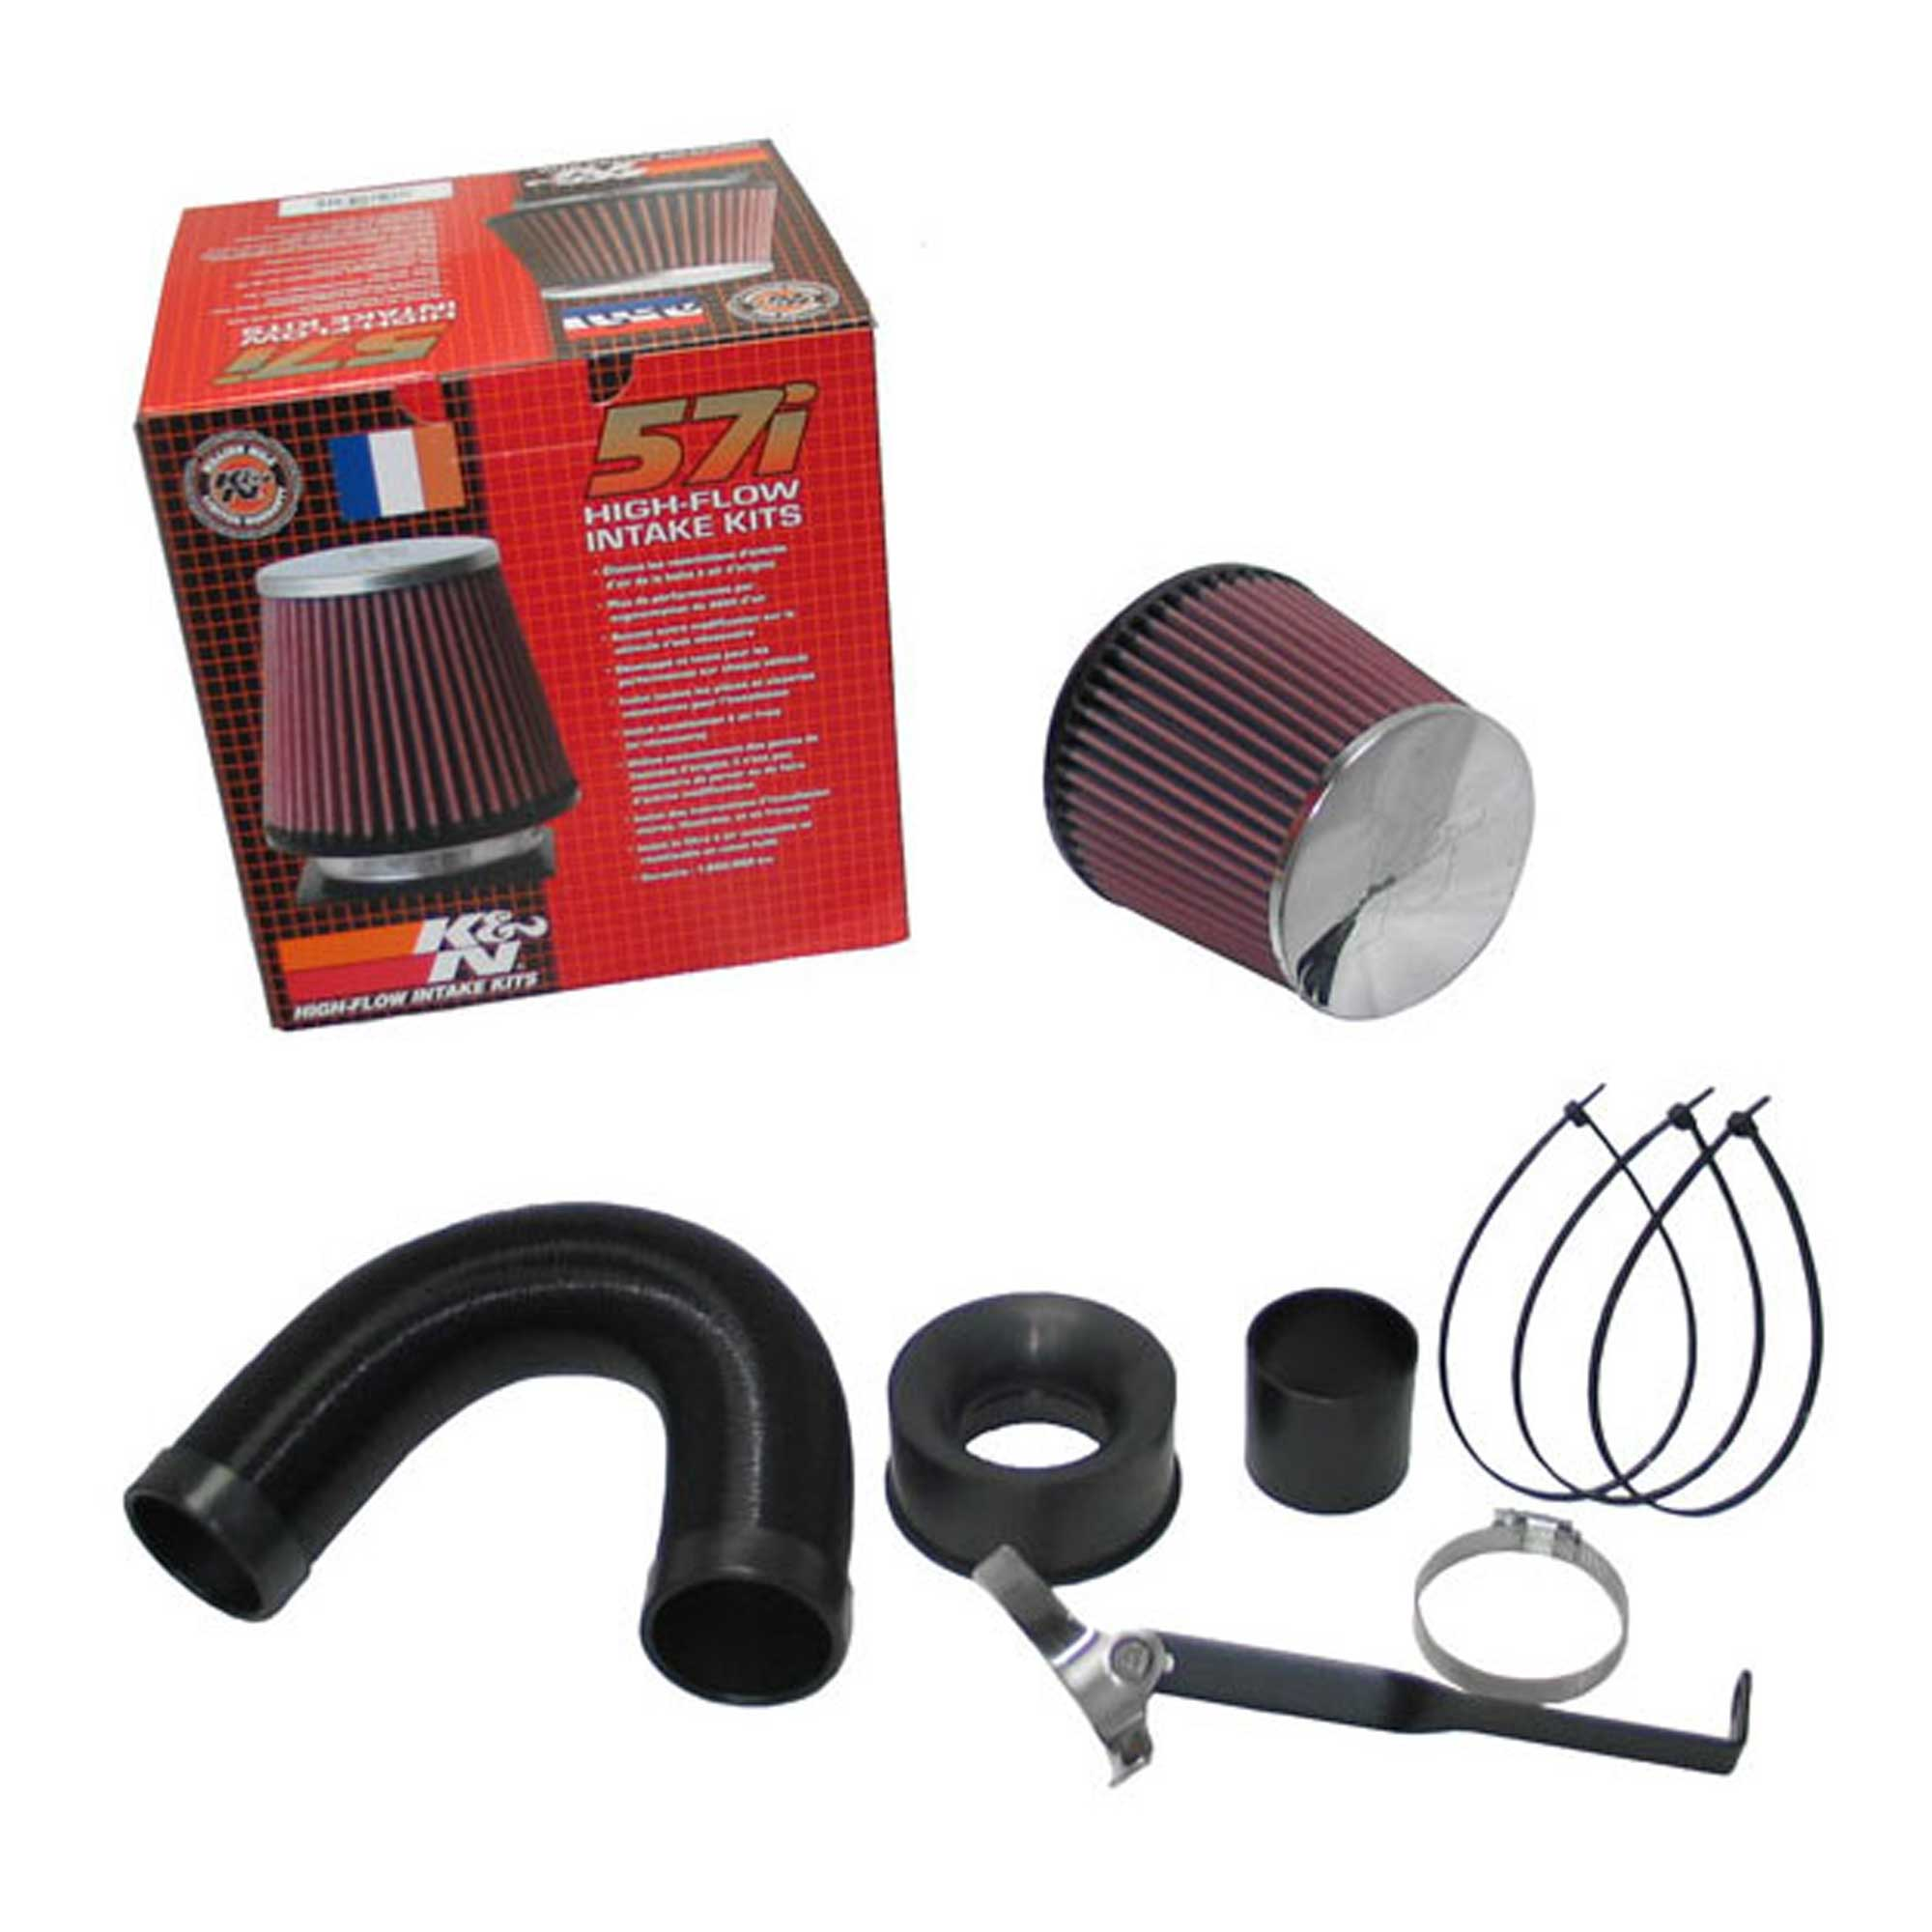 K/&N 57I SERIES HIGH FLOW AIR INTAKE INDUCTION KIT FOR SUBARU IMPREZA SPORT 00-06